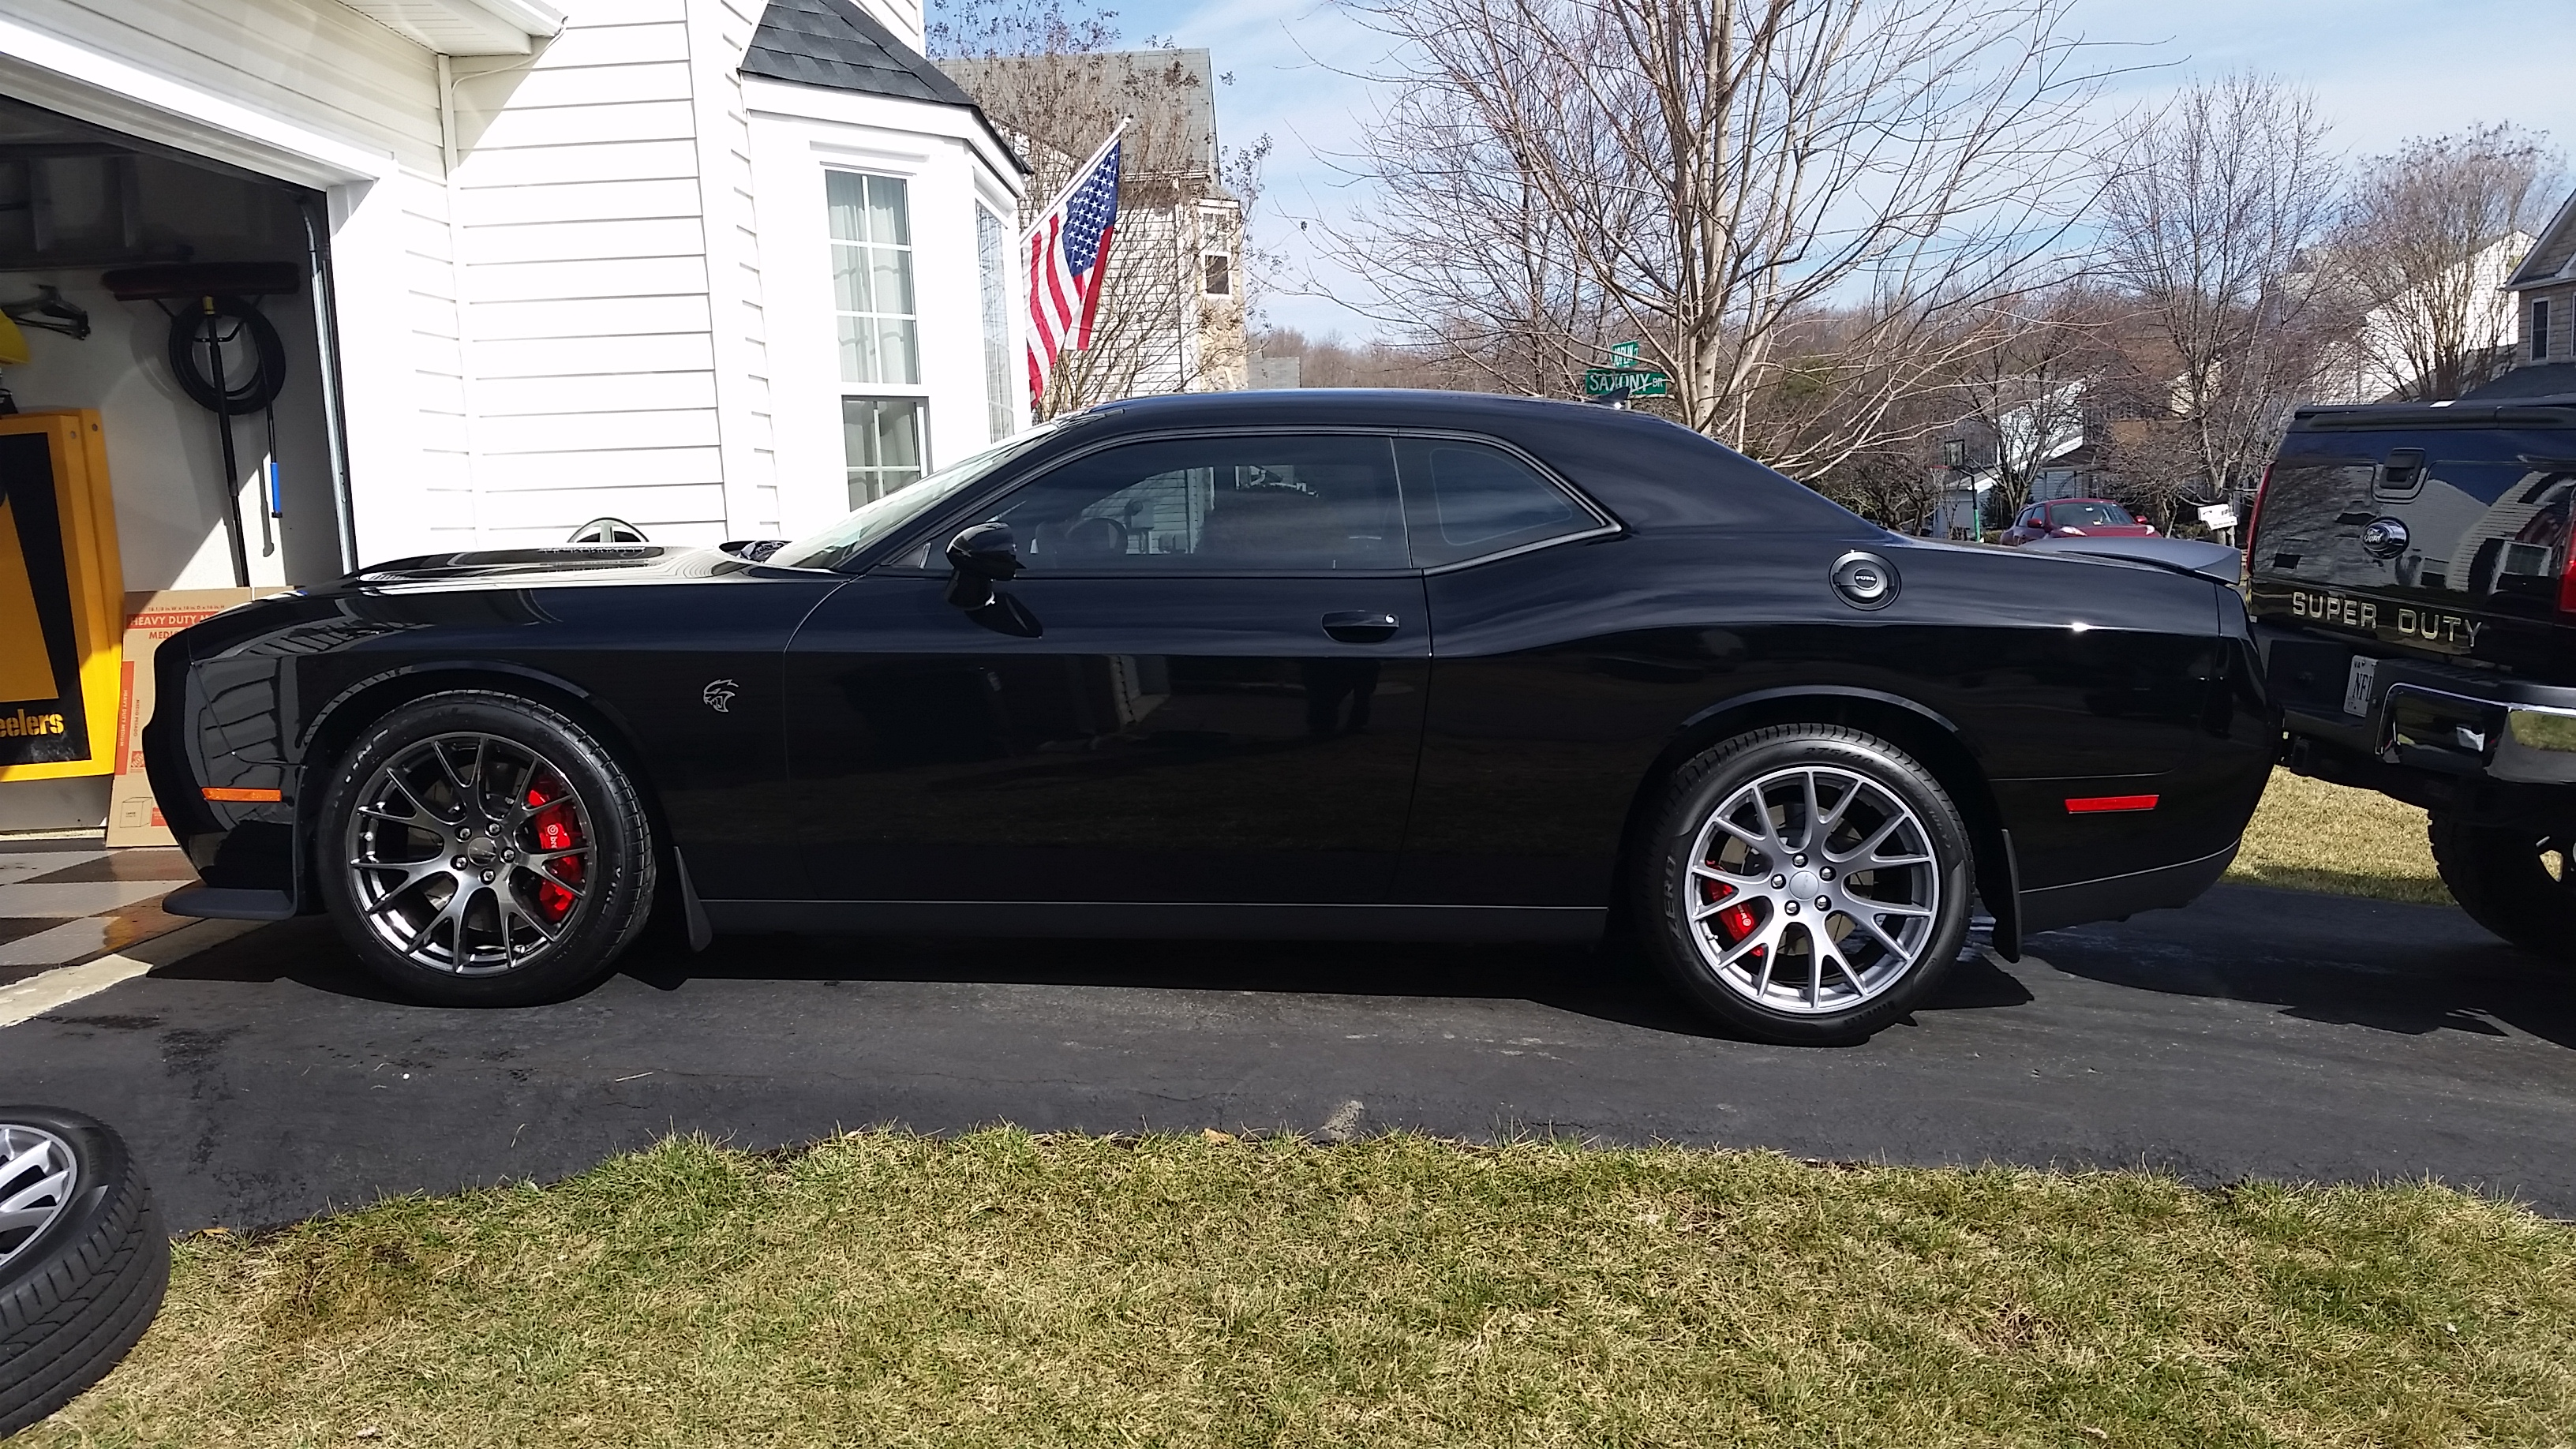 Extraordinary Dodge Challenger Rims And Tires For Sale